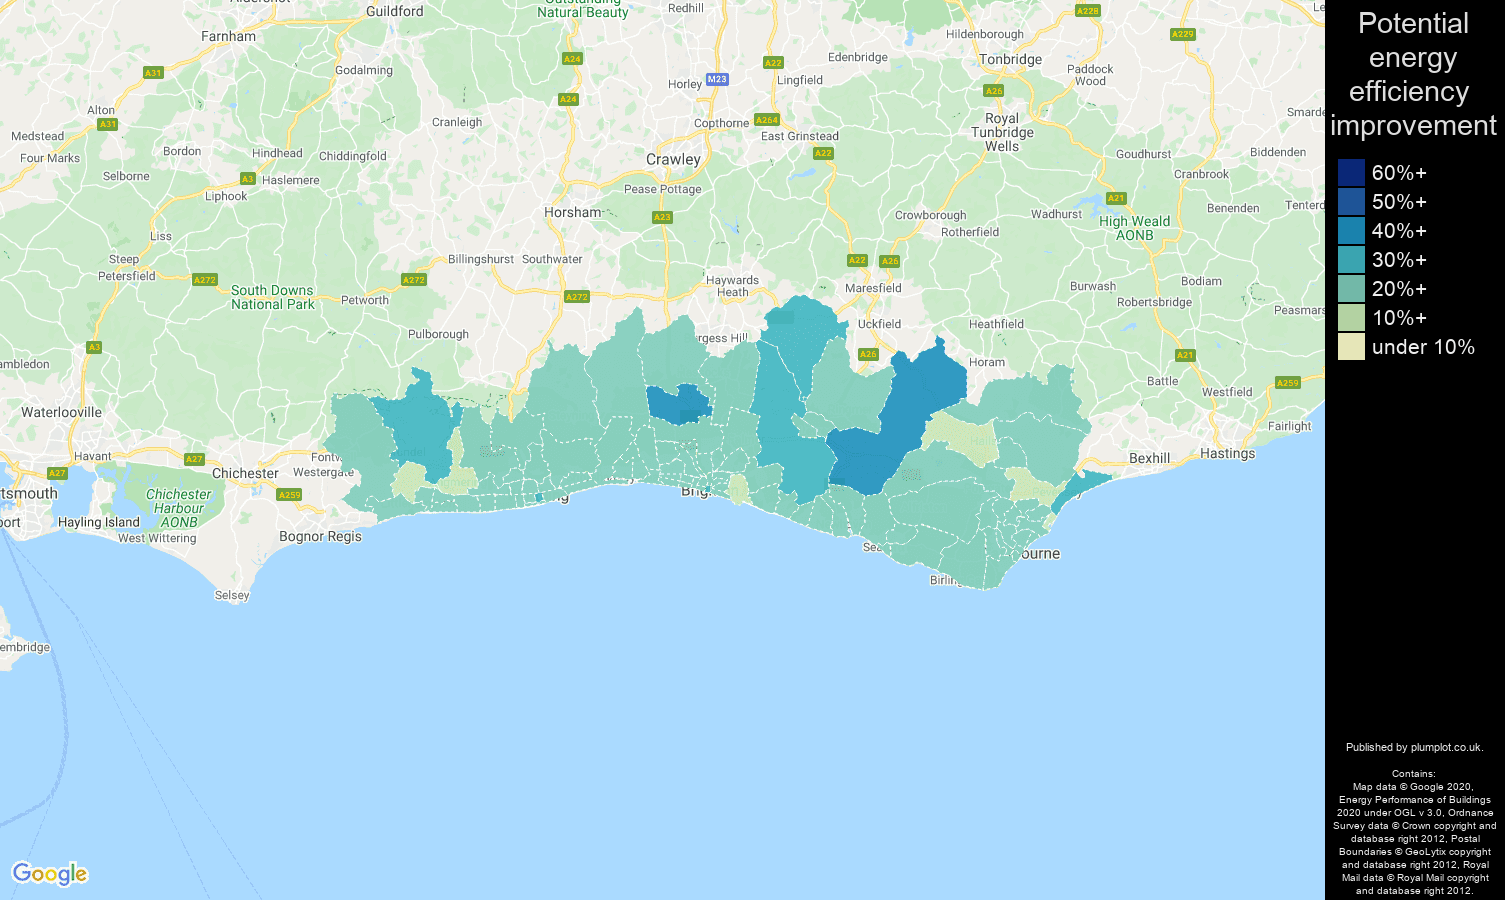 Brighton map of potential energy efficiency improvement of houses